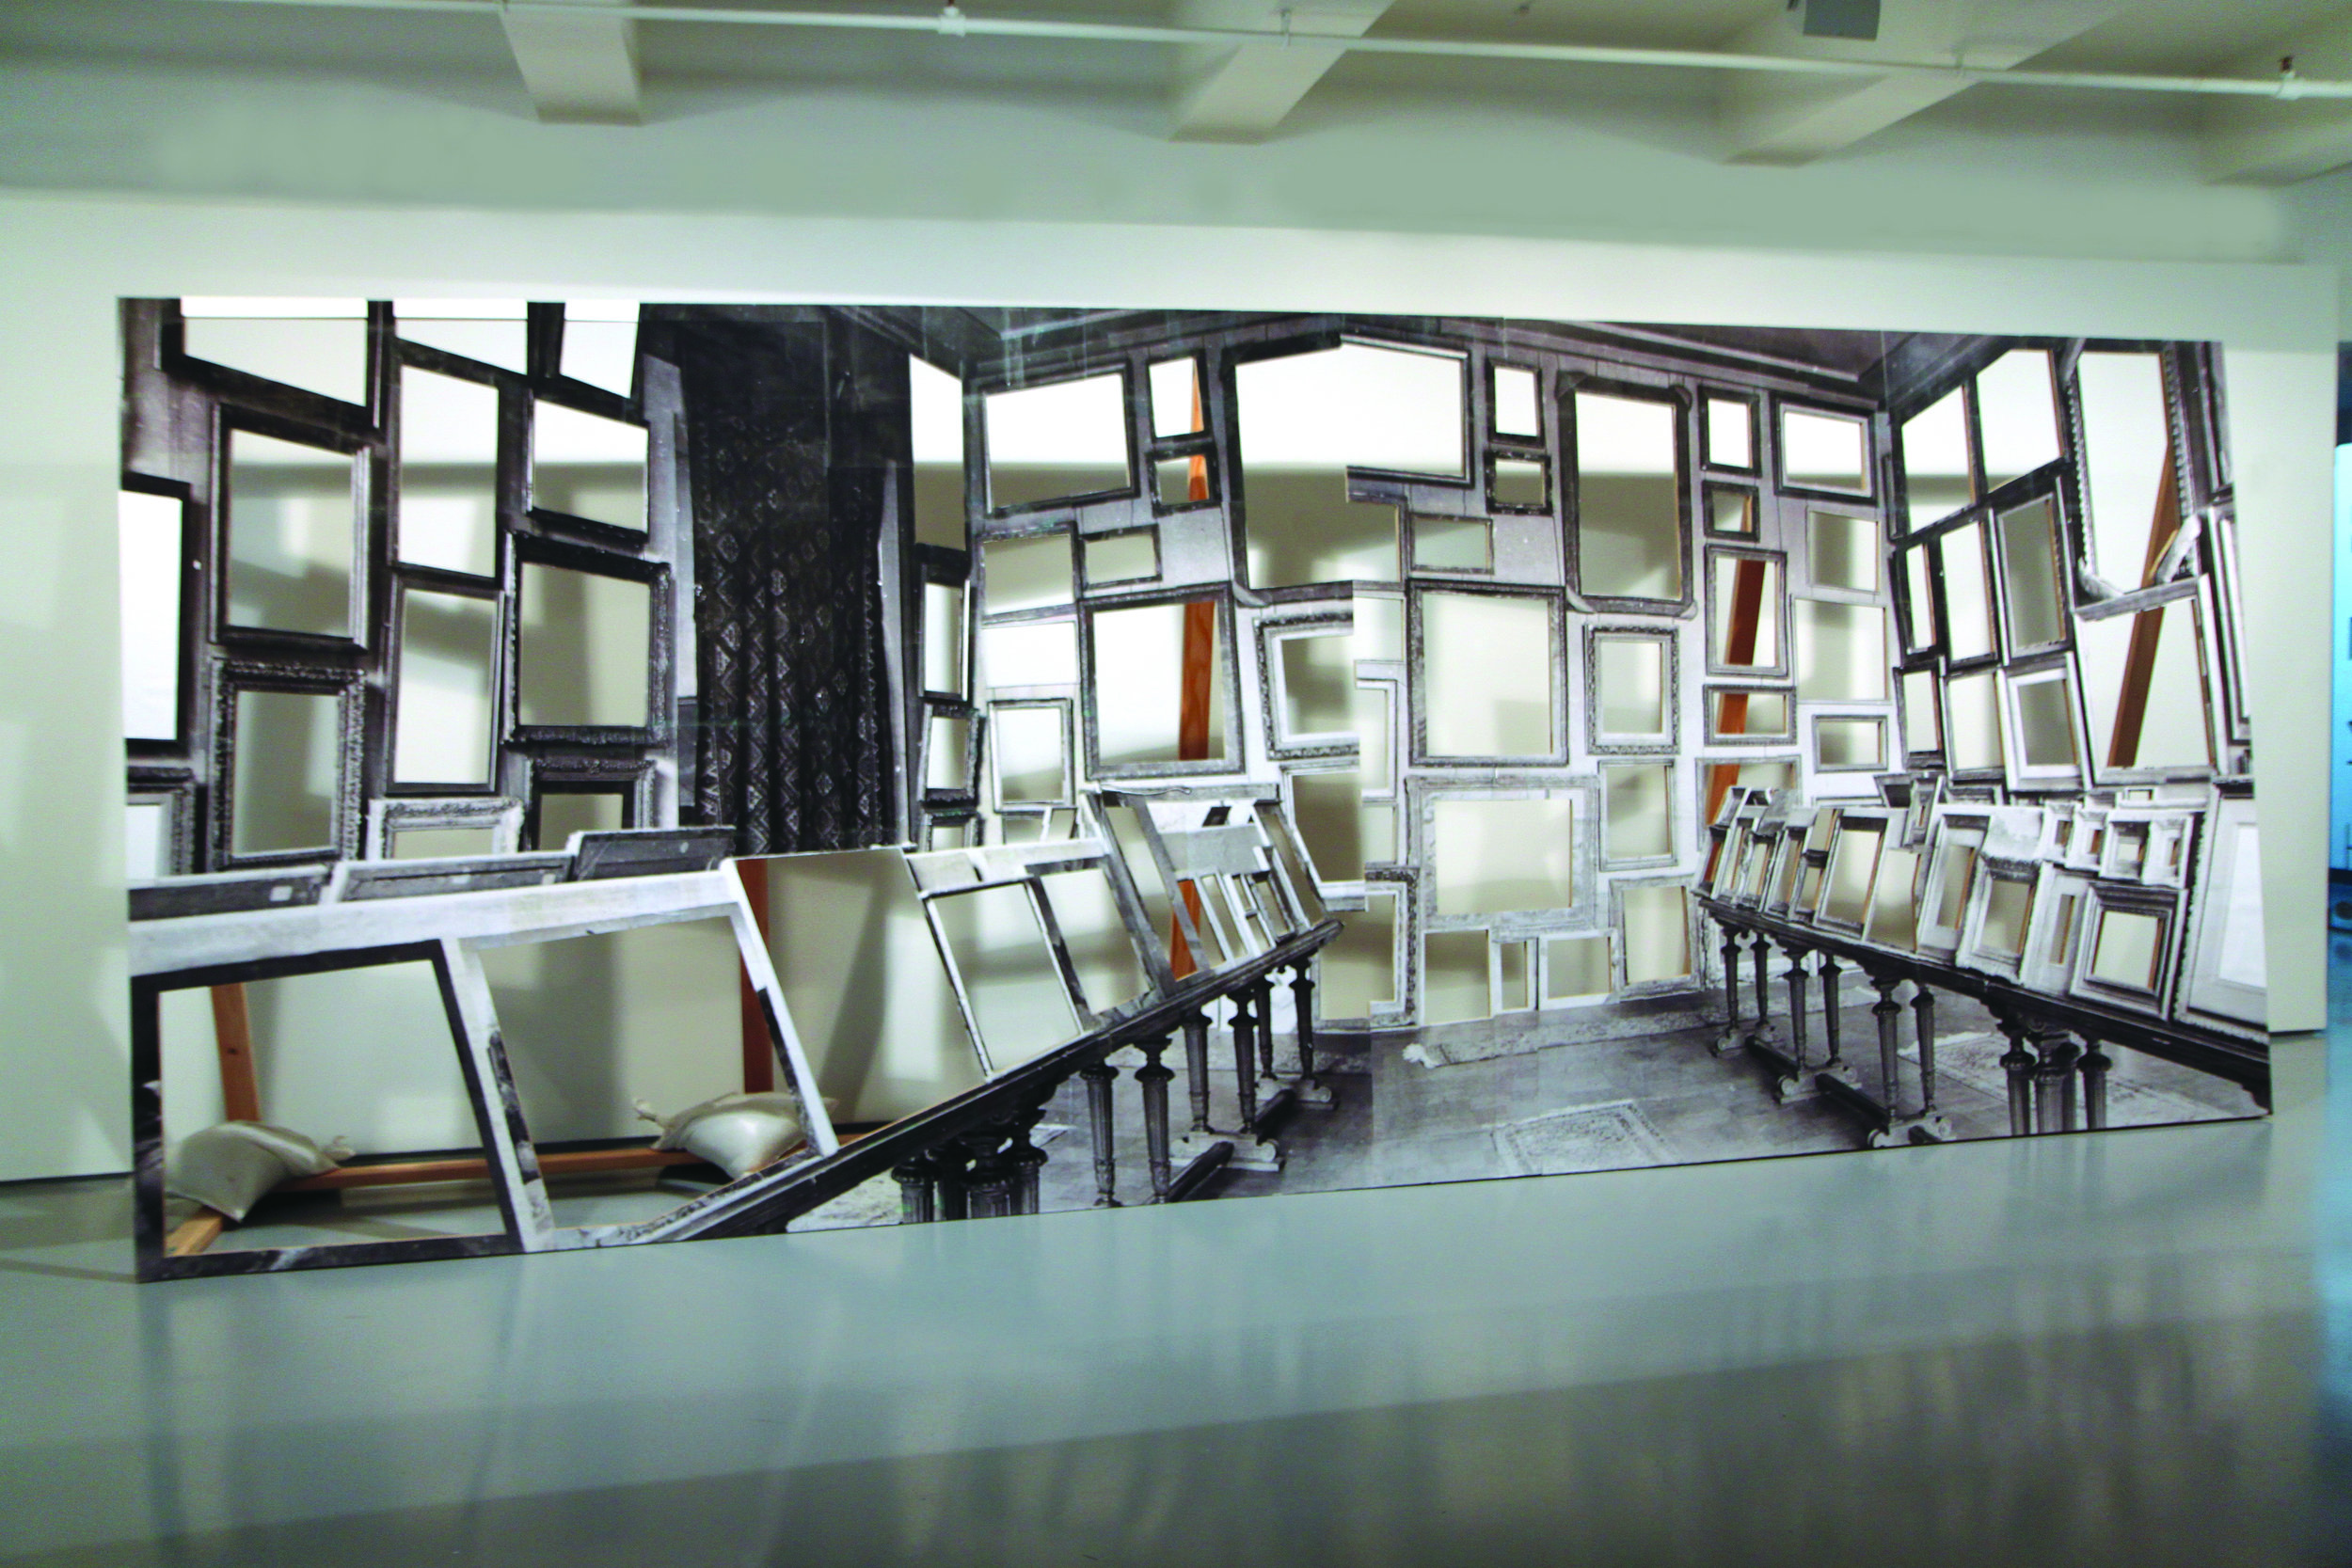 Room of Martyrs (Jeu de Paume), , 2011-2012, photographs on wood with sand bags , 24 feet wide